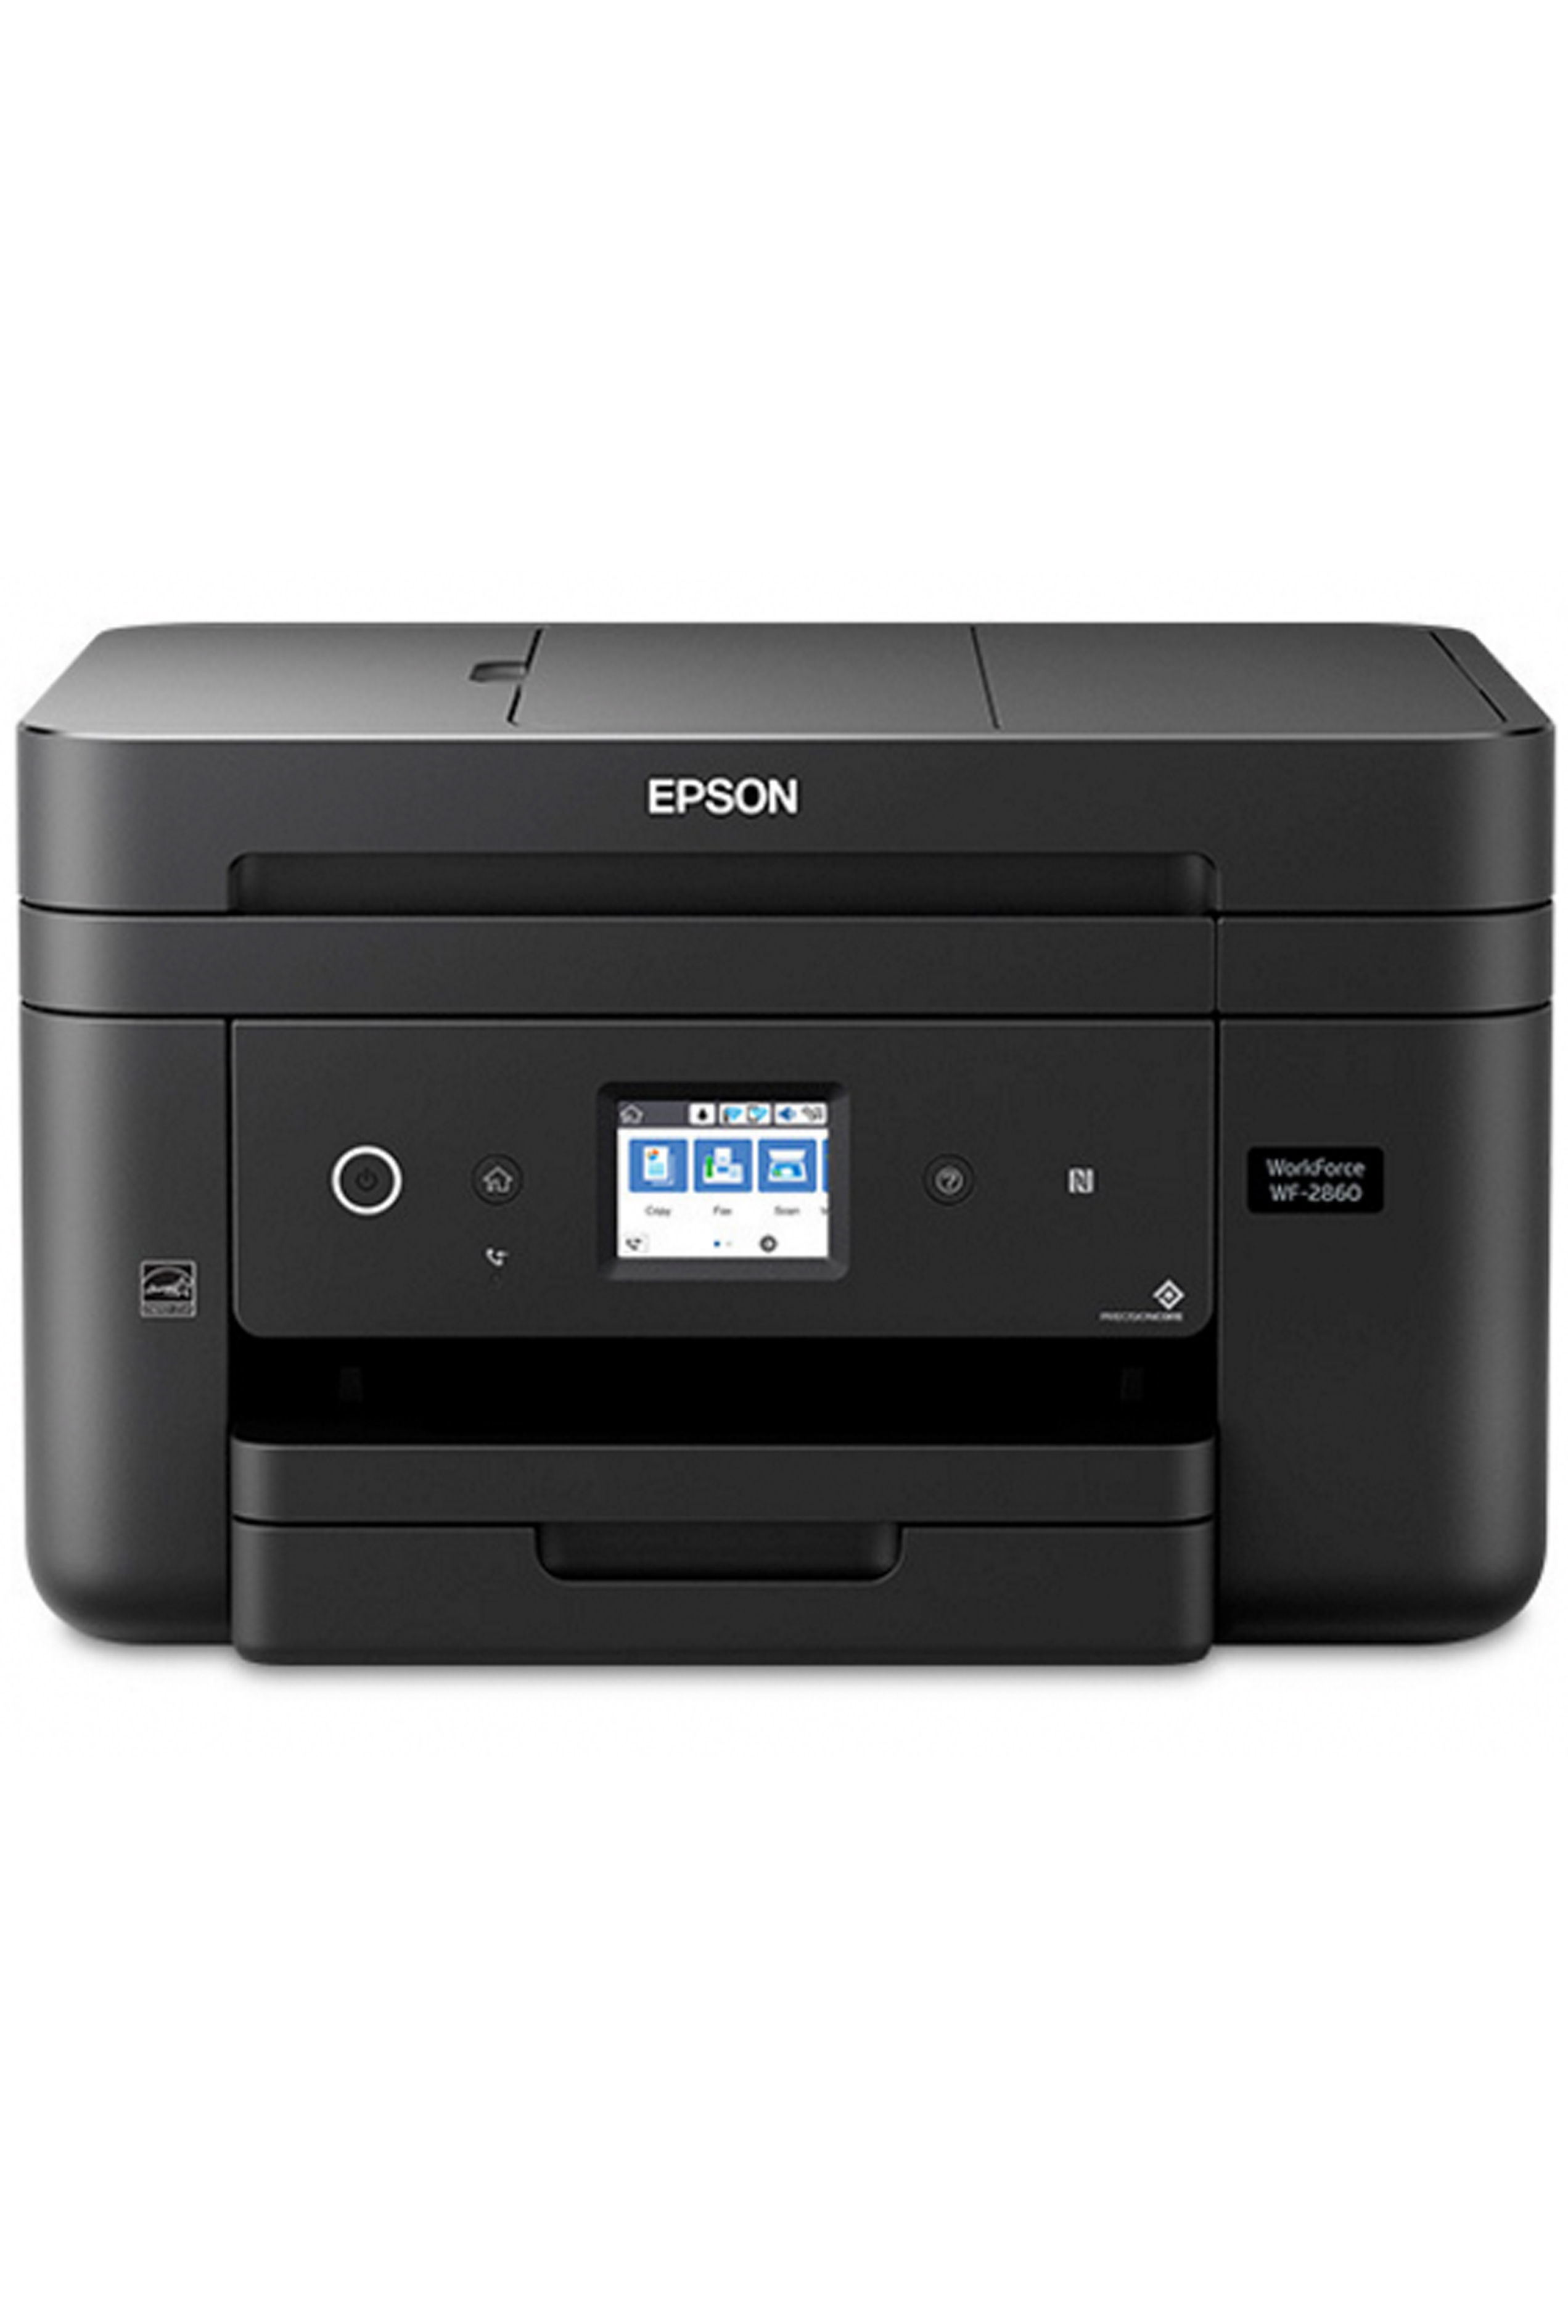 Epson WorkForce WF-2860 All-in-One Printer (14/7.5ppm)